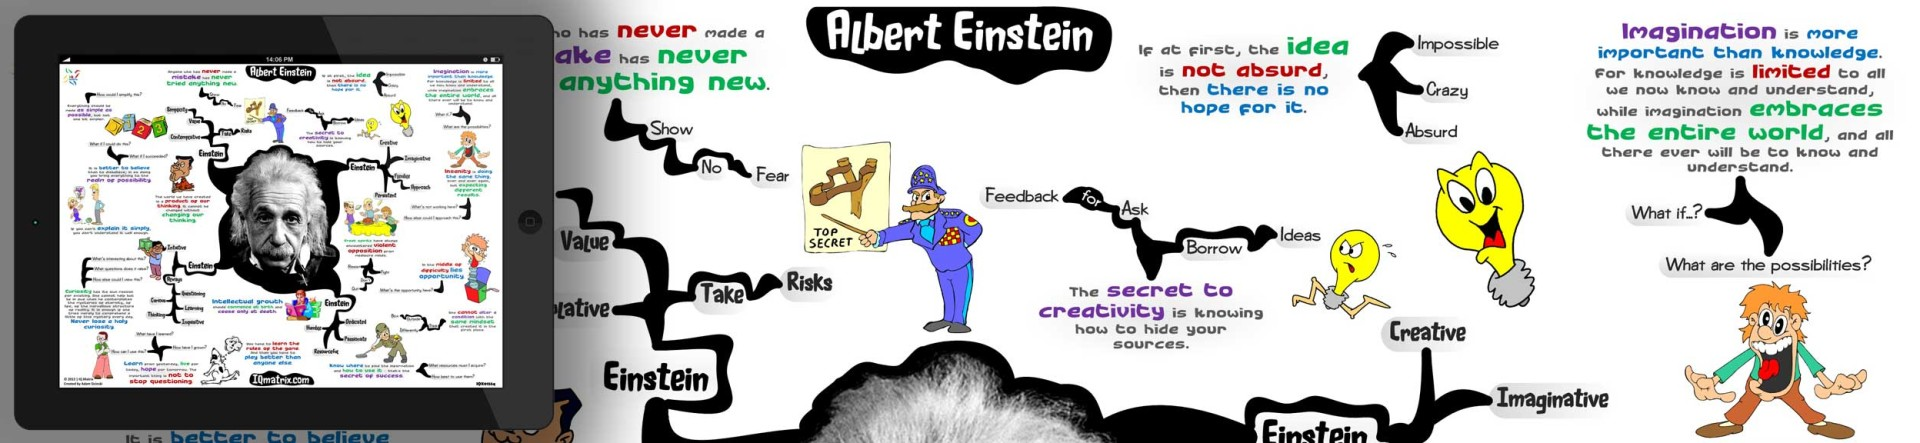 my conversation albert einstein about creativity intuition my conversation albert einstein